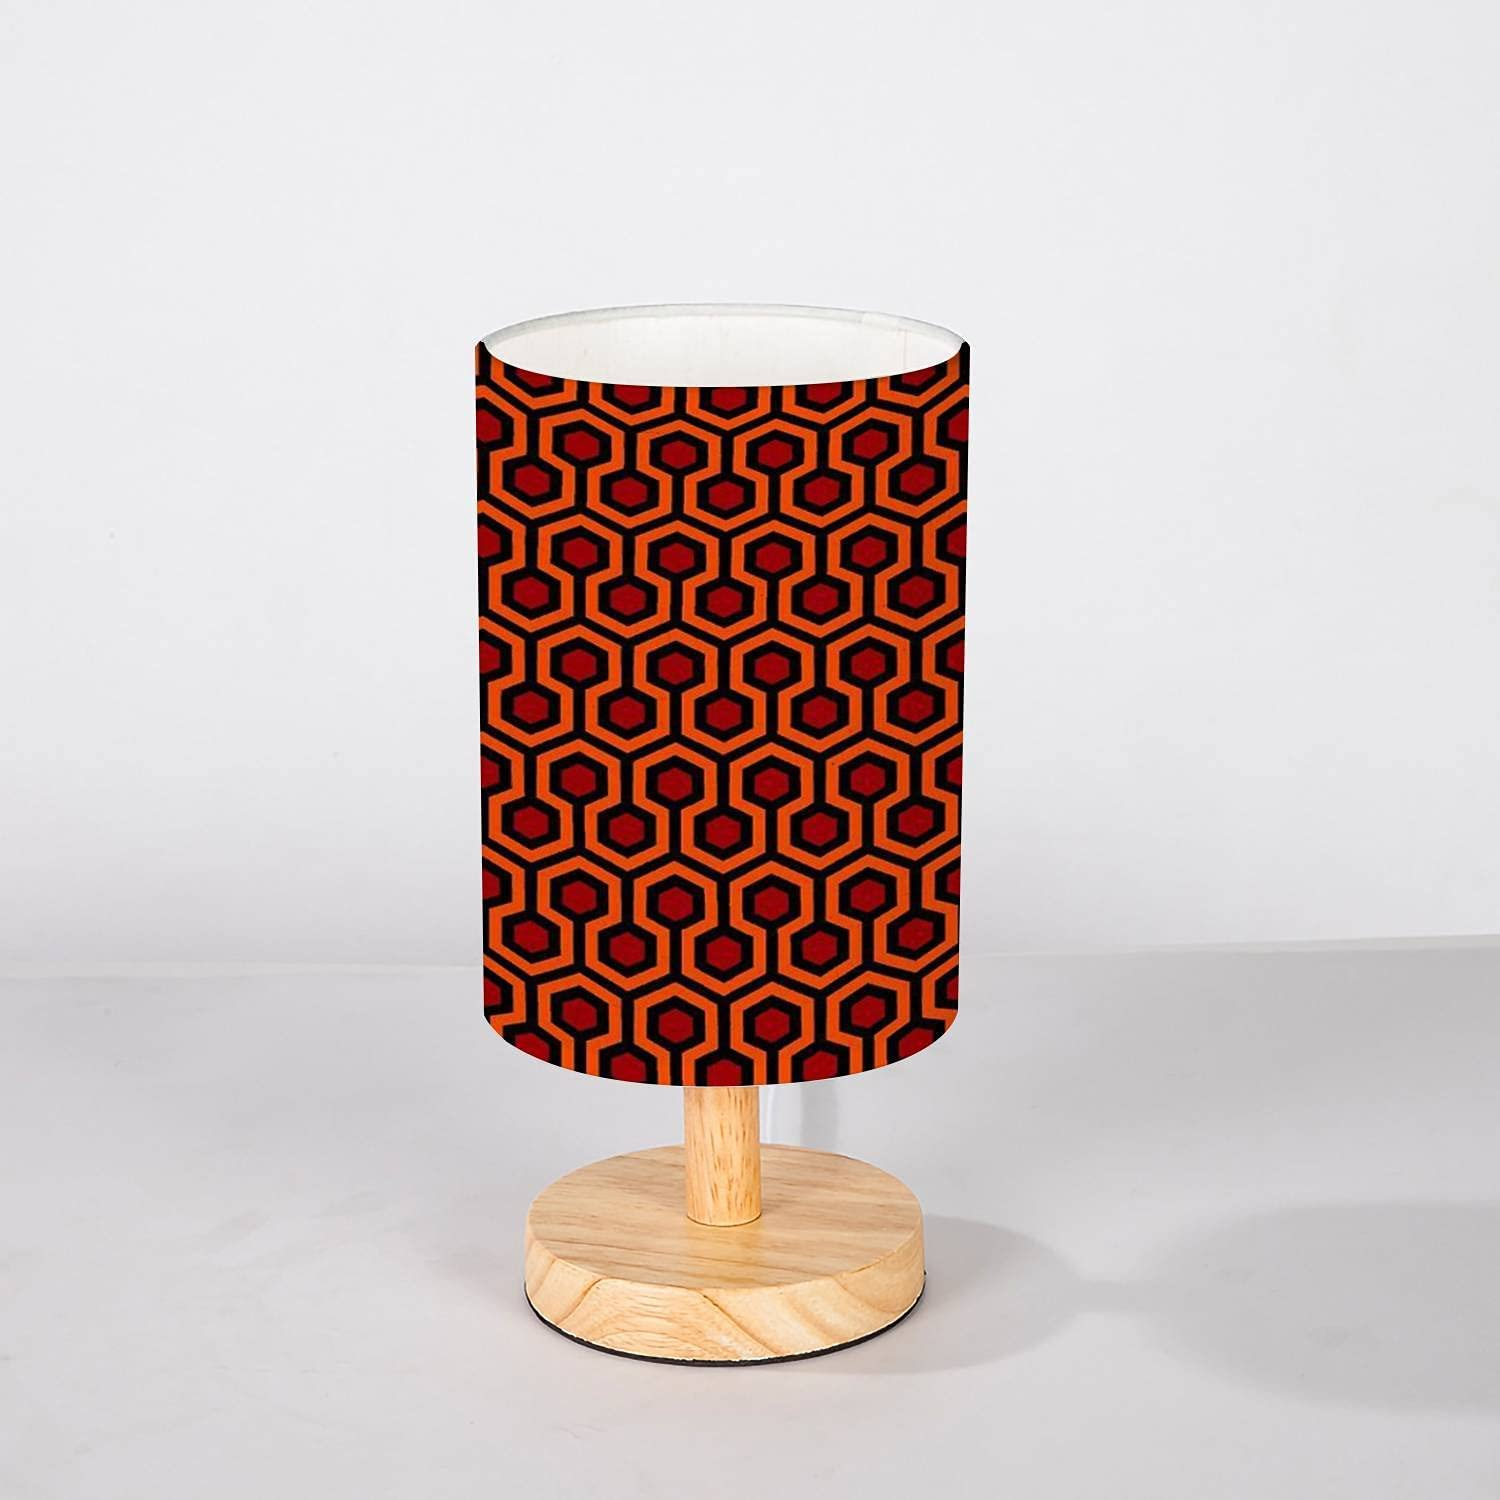 Minimalist OFFicial shop Baltimore Mall Bedside Table Lamp The Shining Overlook Sleep Doctor